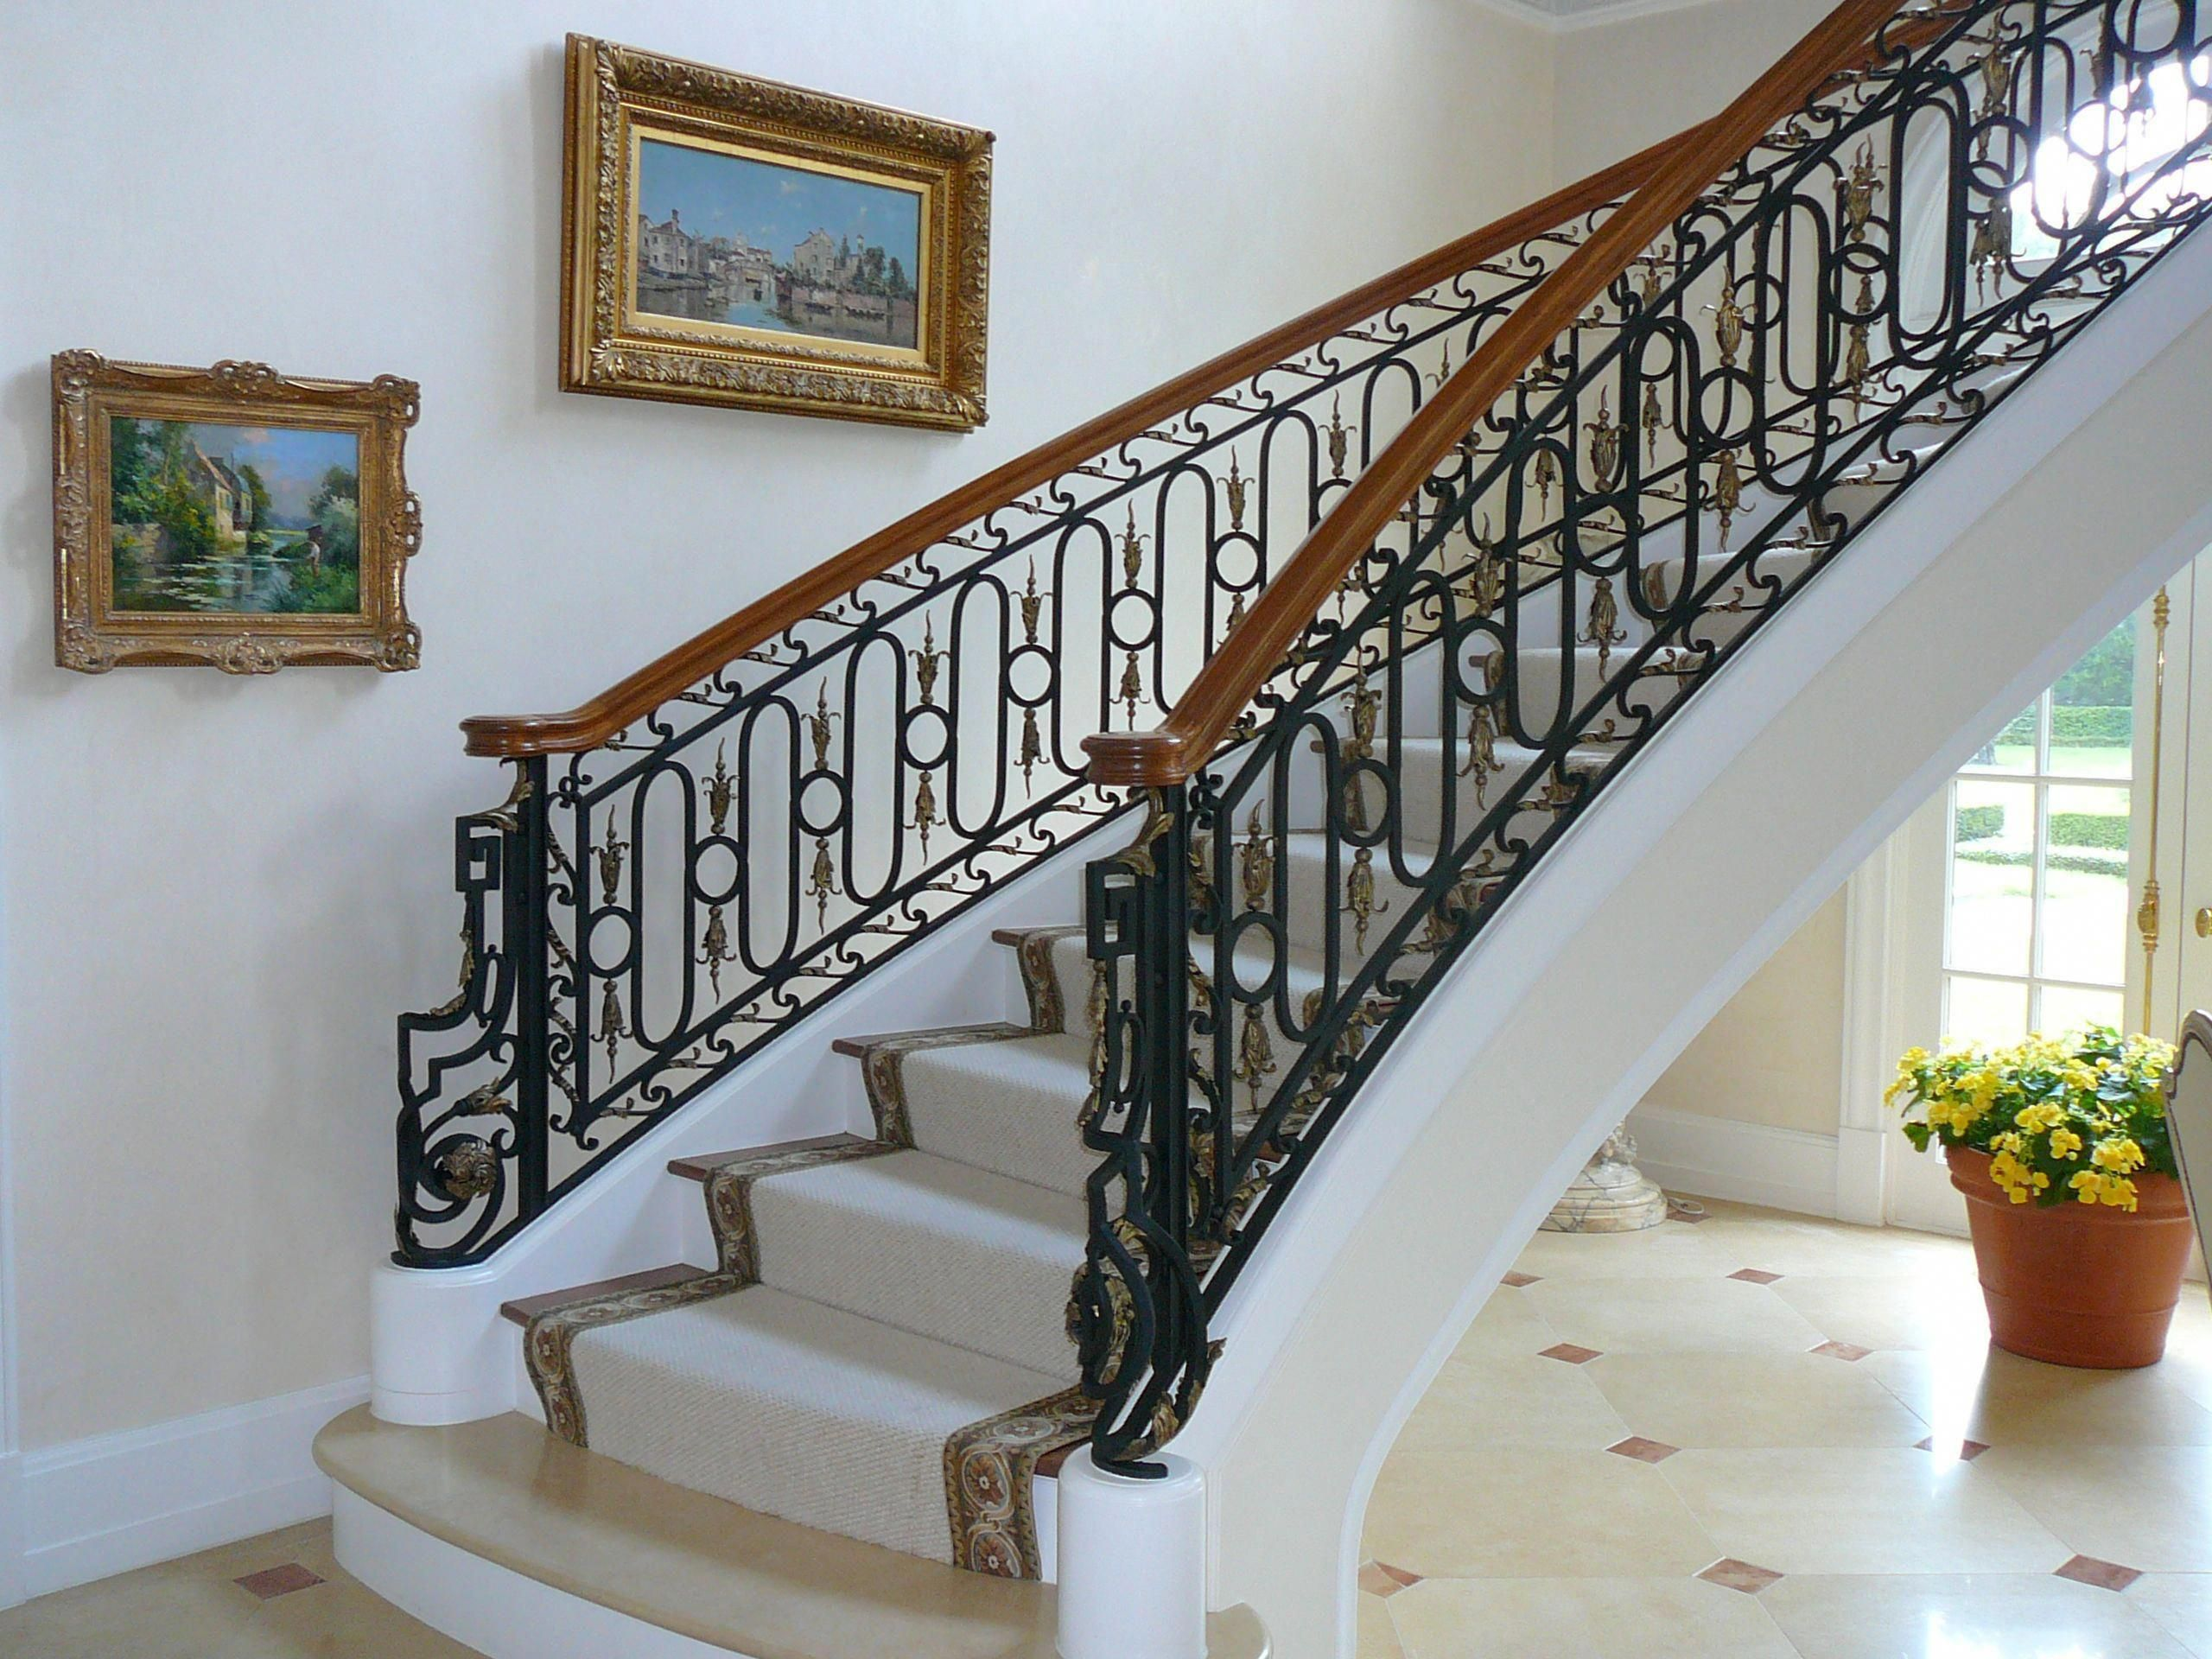 I took inspiration from the Petite Trianon for the wrought